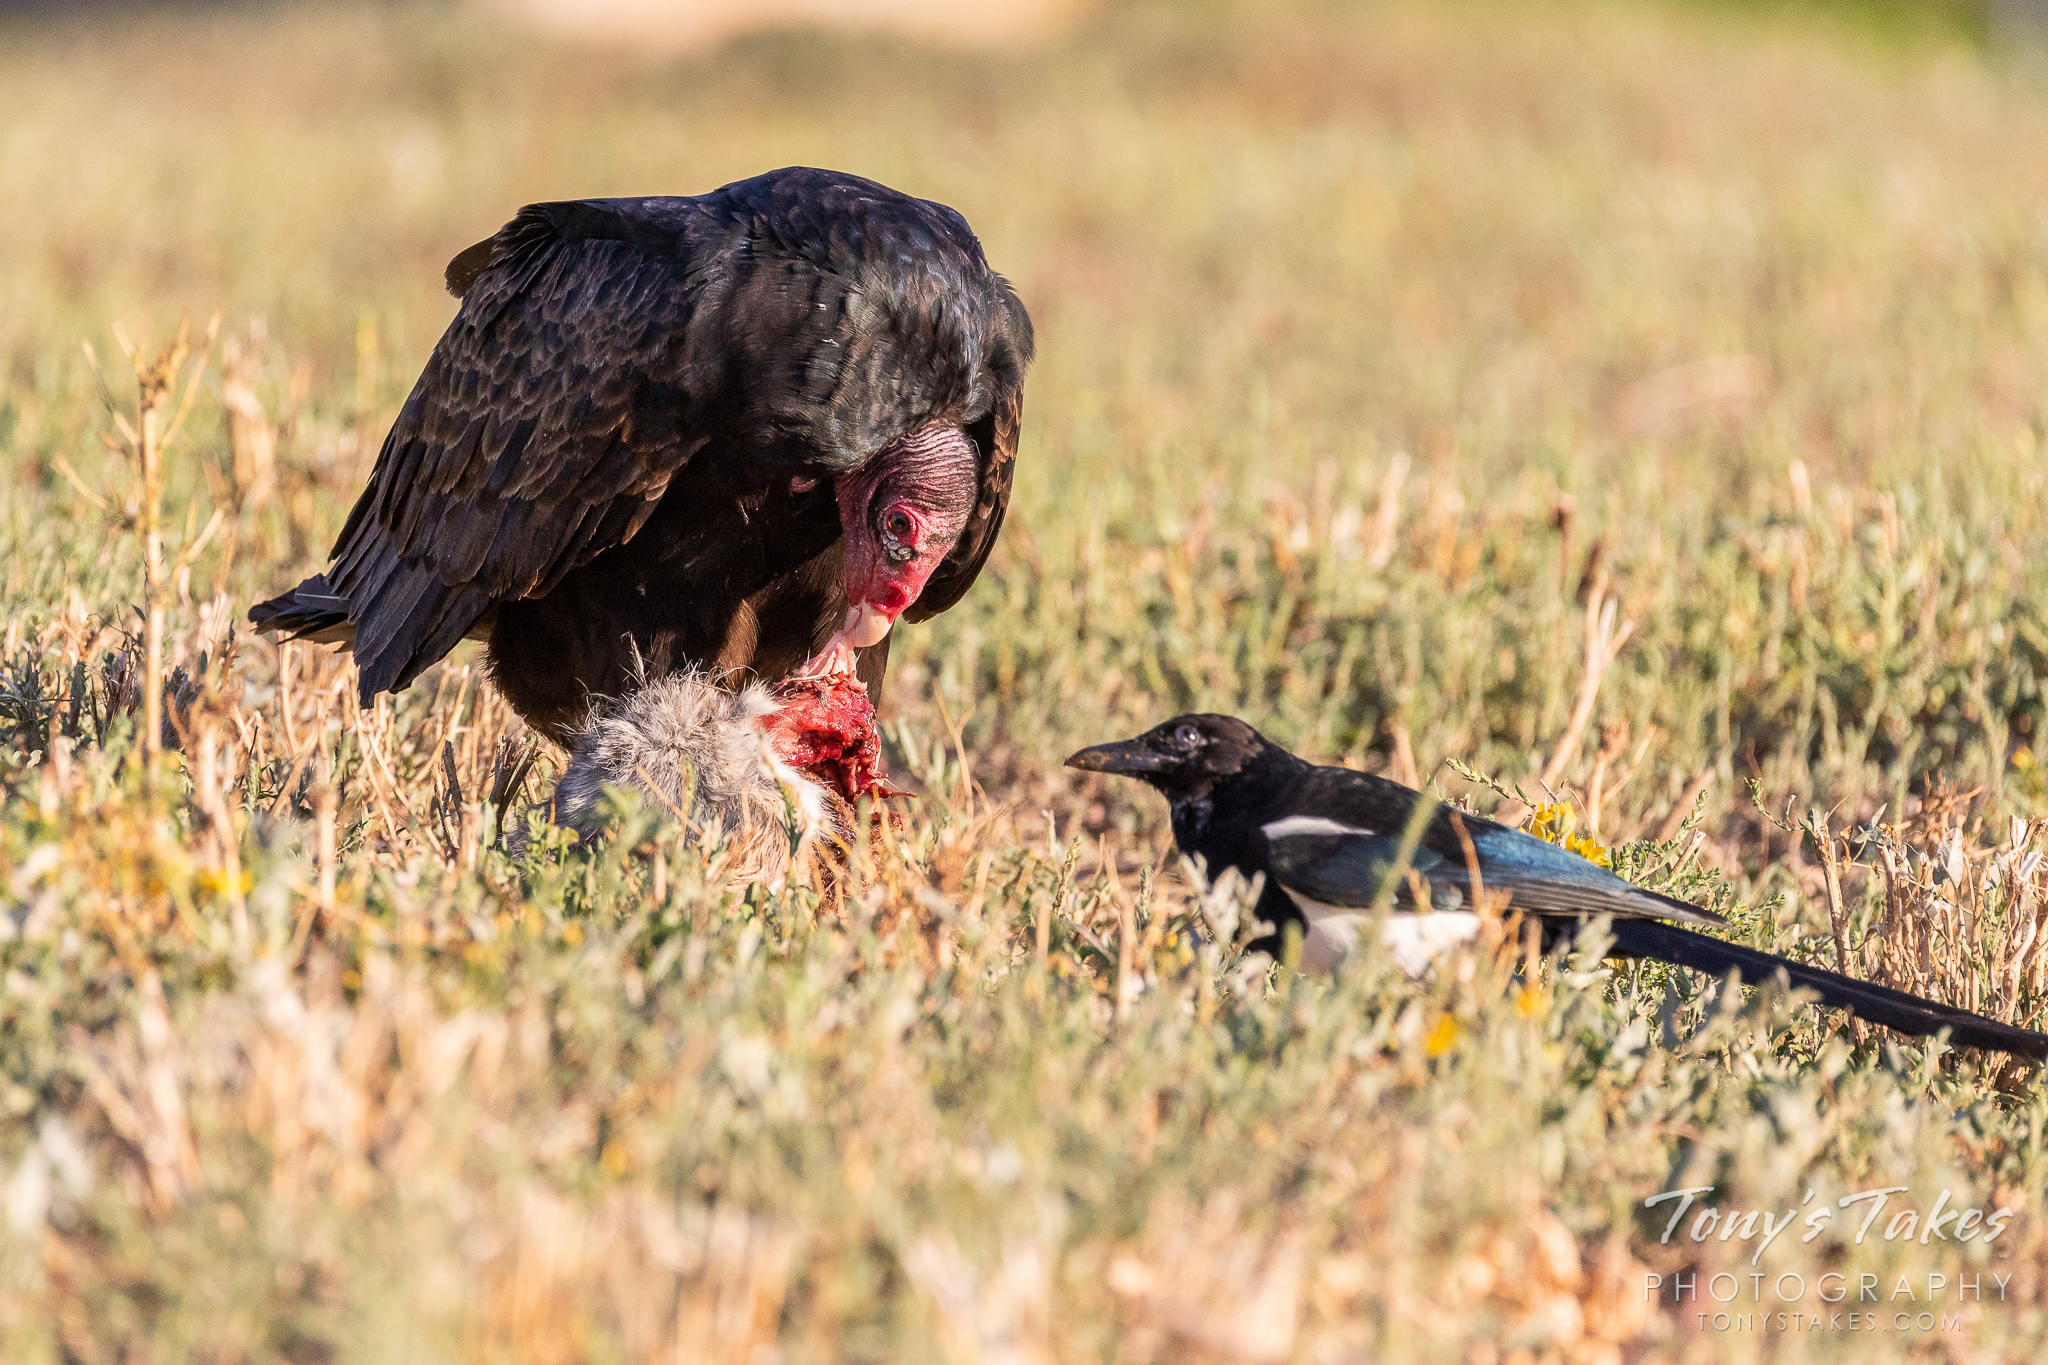 A Turkey Vulture dines on a rabbit while a Magpie waits for its turn. (© Tony's Takes)